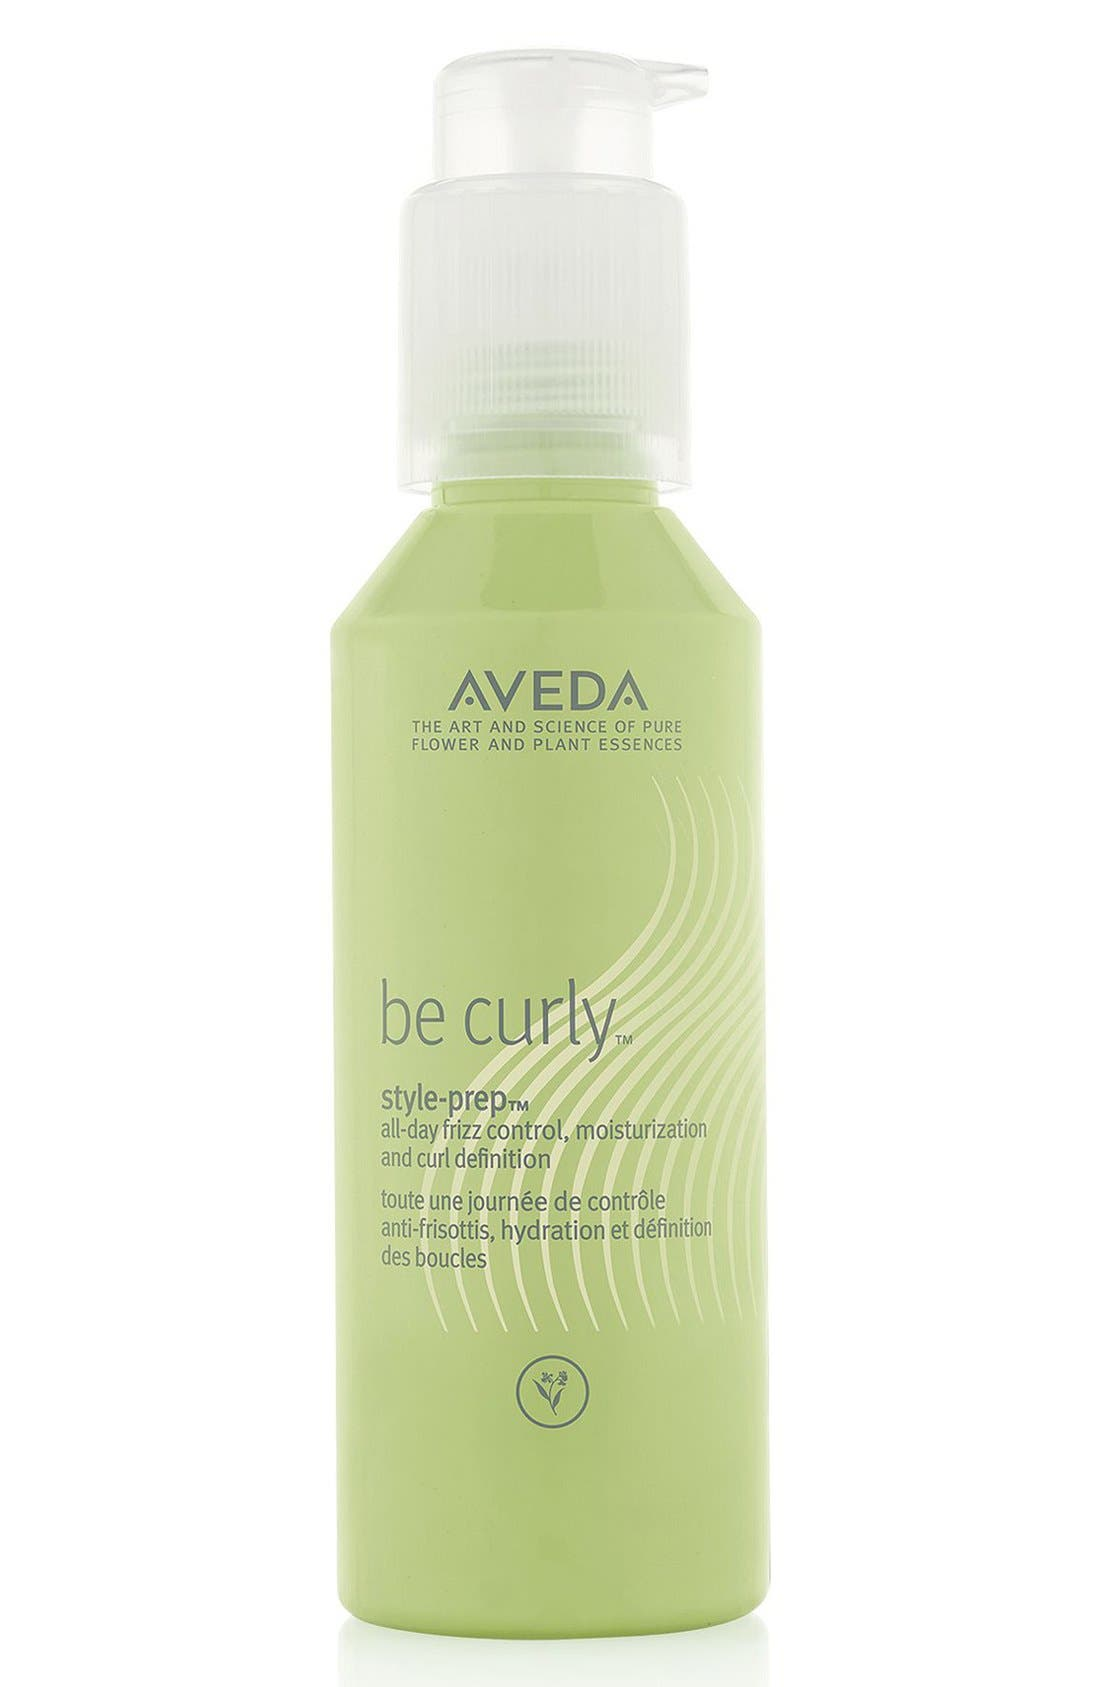 AVEDA be curly<sup>™</sup> style-prep<sup>™</sup>, Main, color, NO COLOR